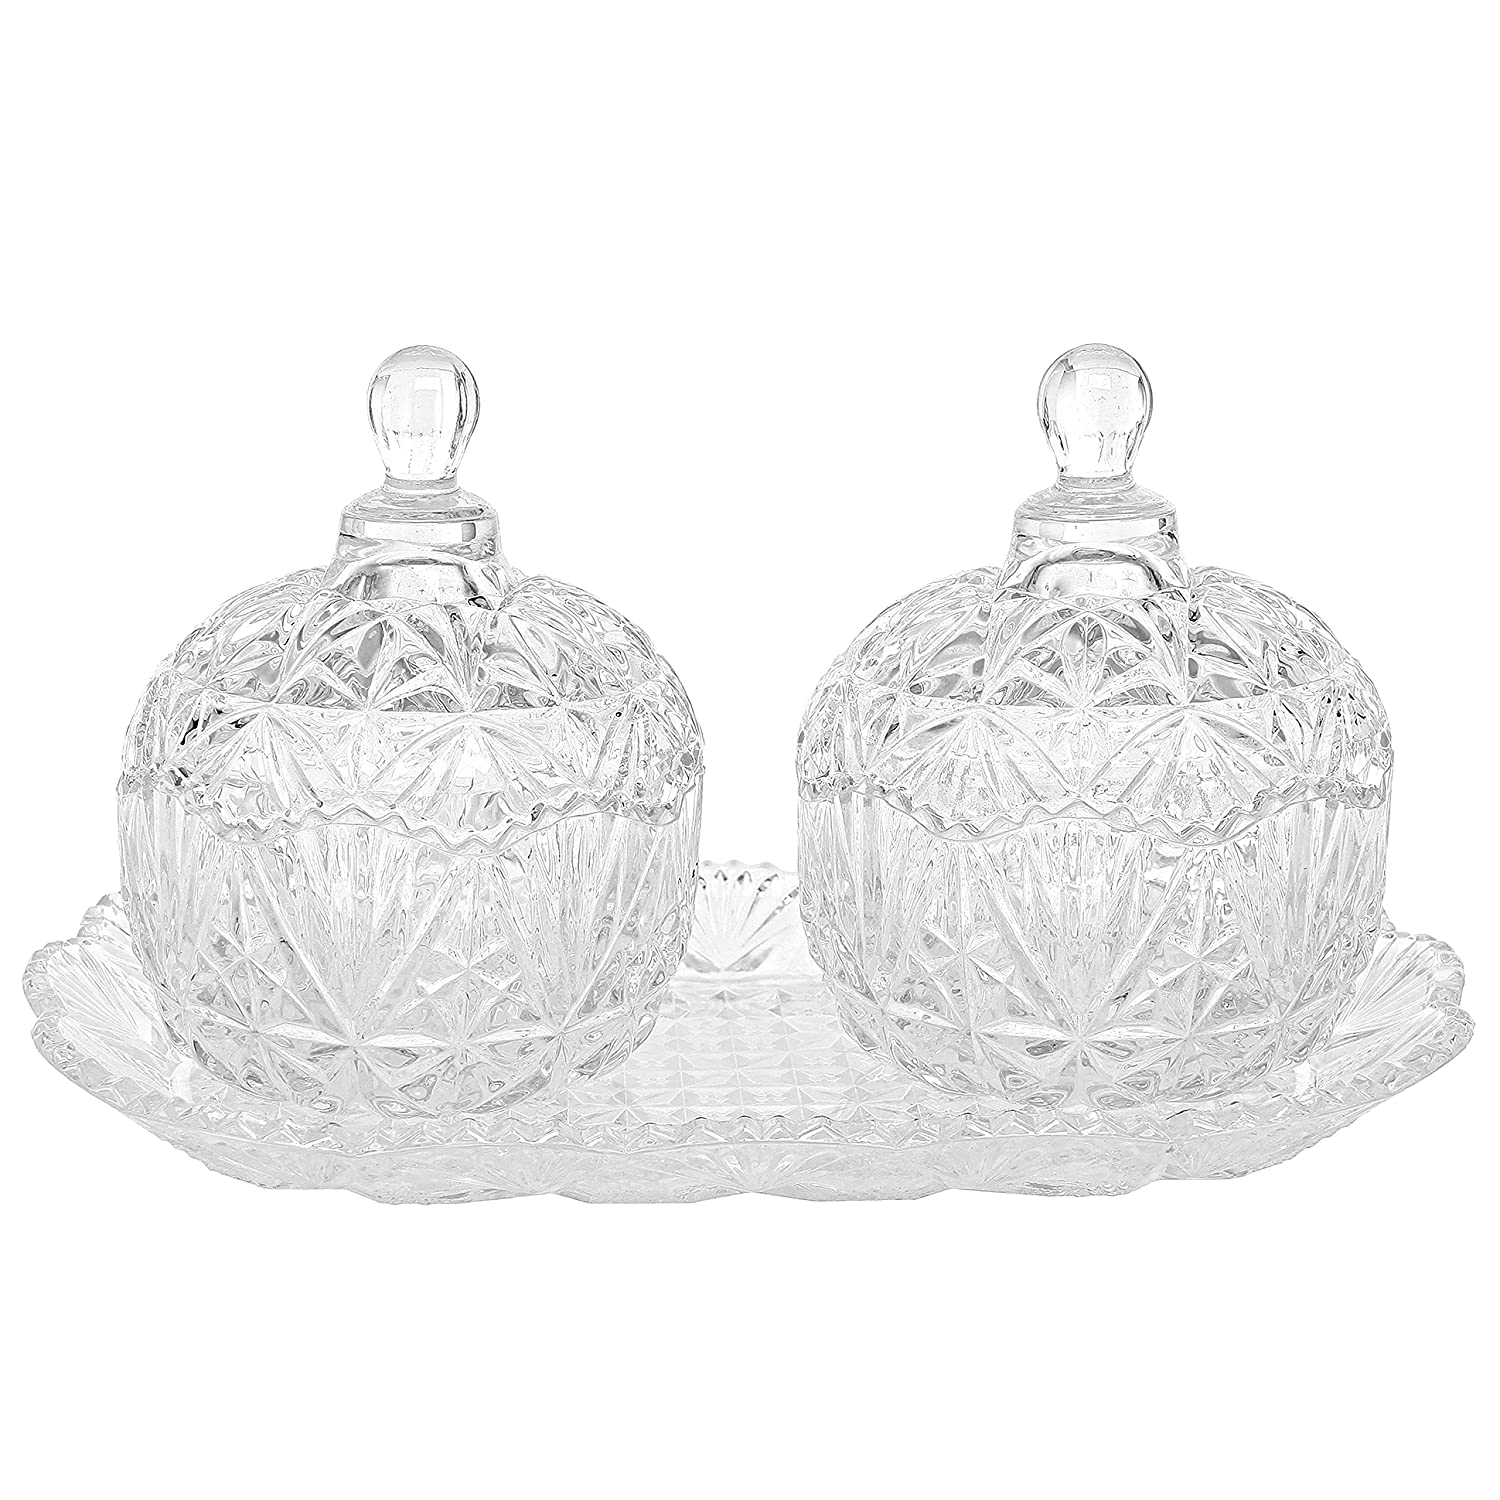 Clear Glass Crystal Design 8 oz Sugar Bowls Set & Tray / Decorative Candy Dishes, 3 Piece Set - MyGift